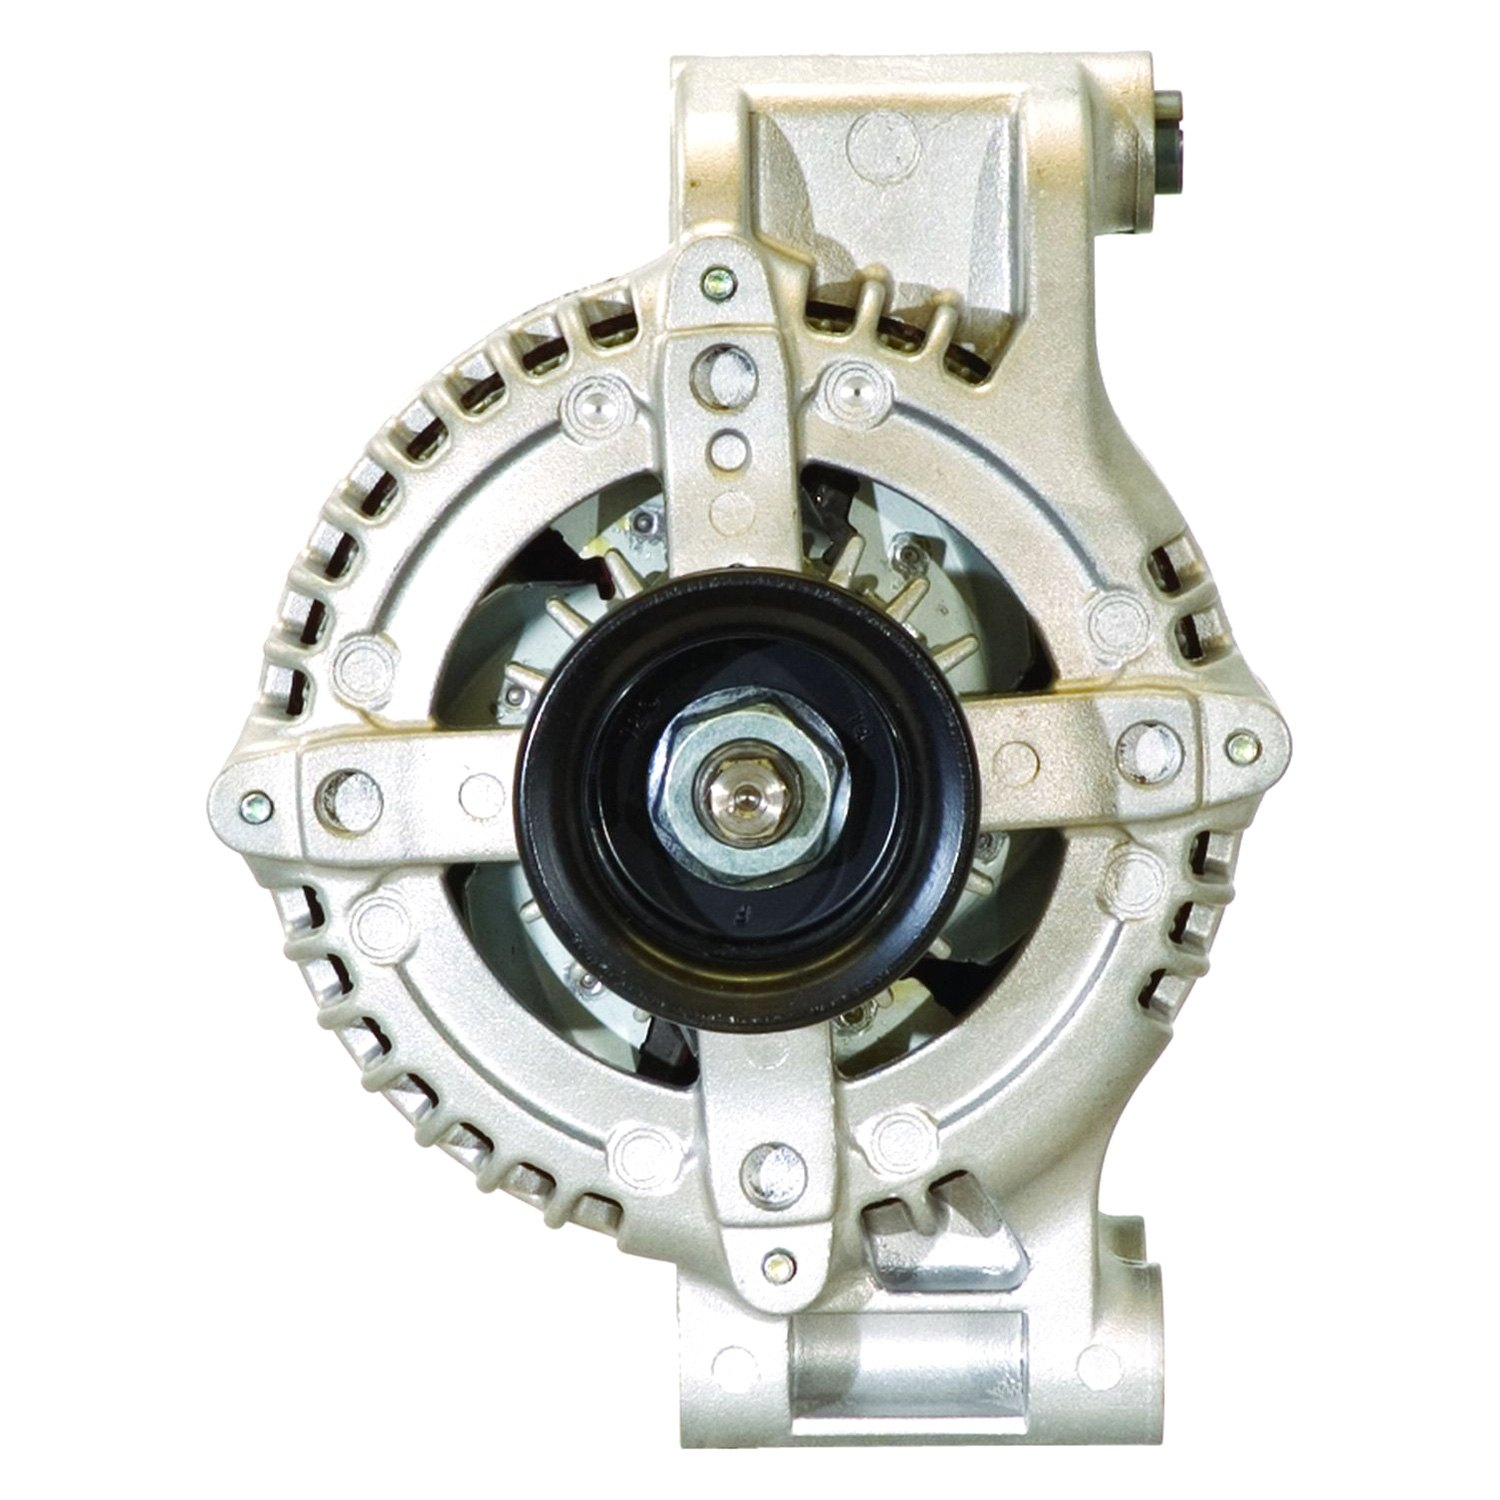 Chrysler 300 2006 2009 Remanufactured Starter: Chrysler 300 2006 Professional™ Alternator